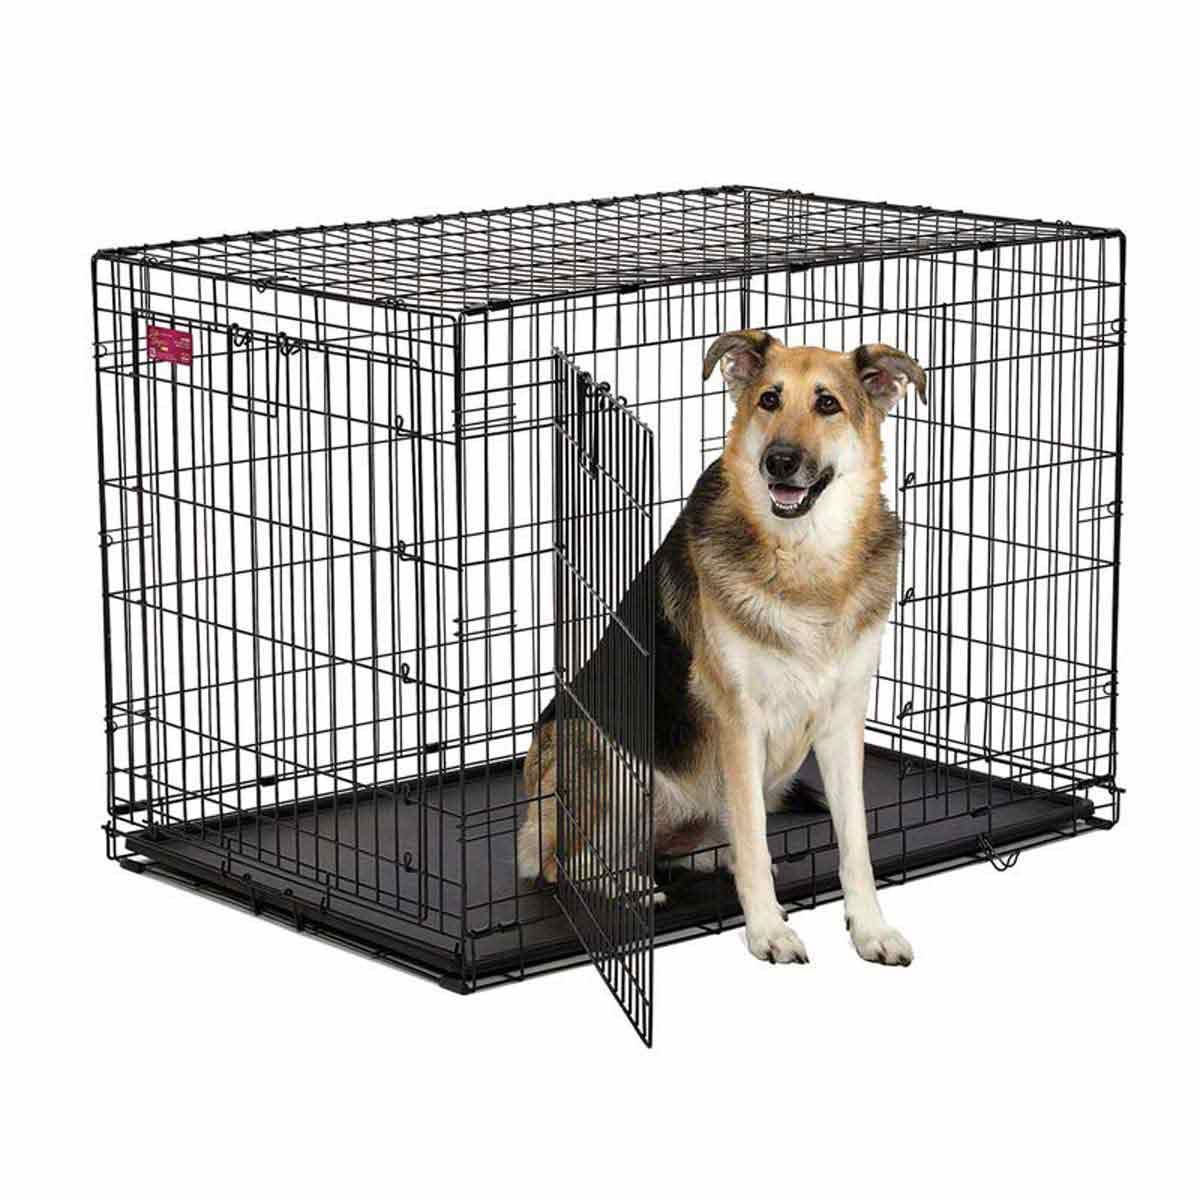 Mdwest Life Stage A.C.E. Double Door Crate for Dogs - 42.75 inches by 28.5 inches by 30.5 inches